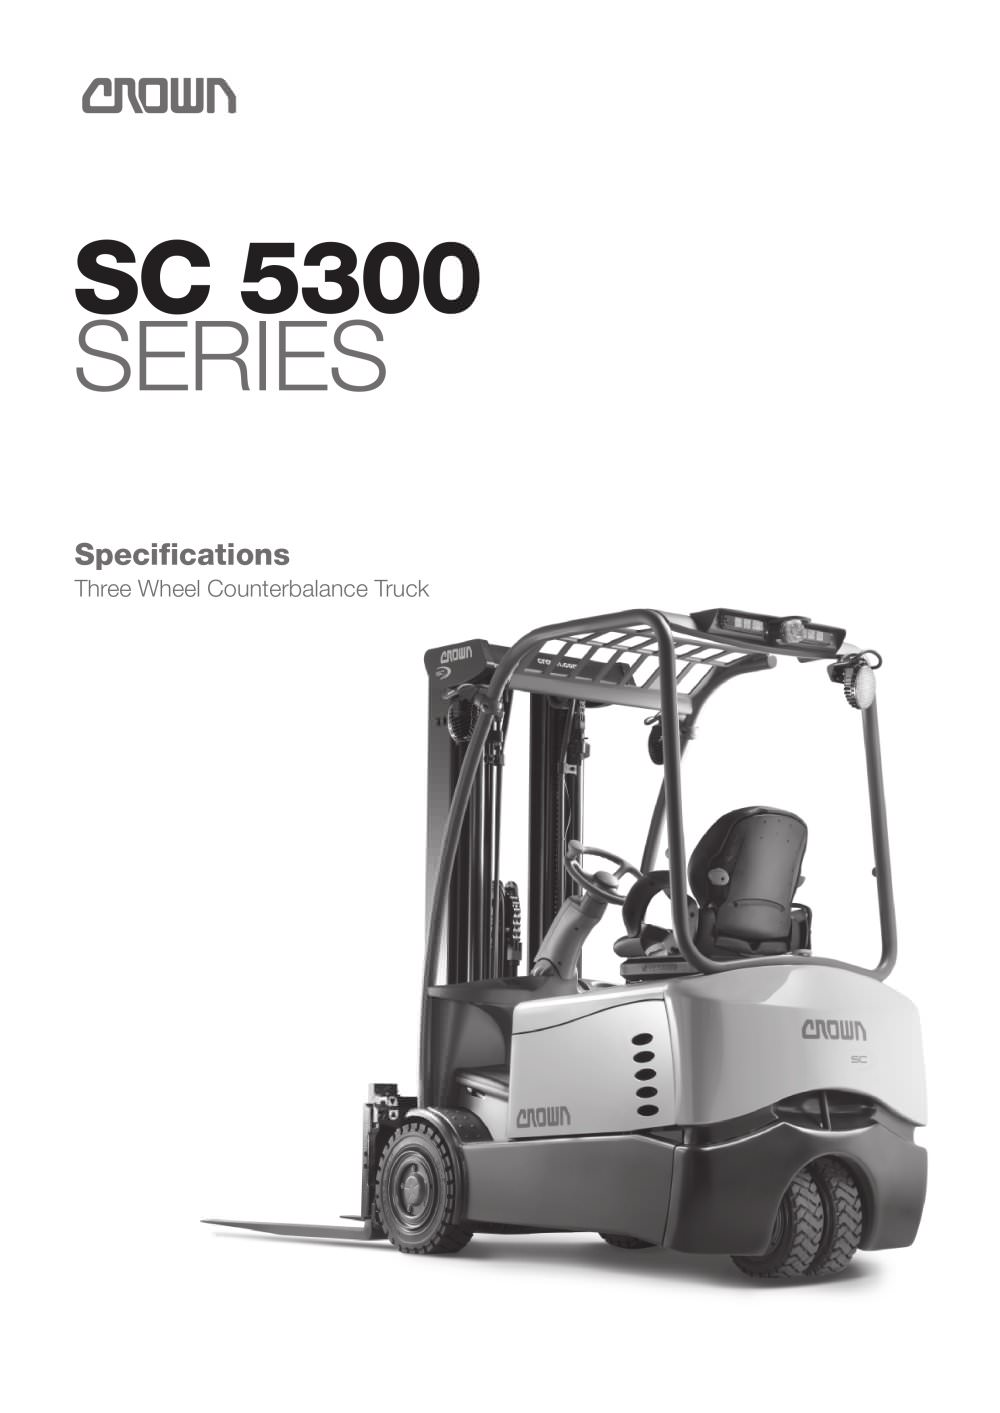 Electric Forklift 3-Wheel, SC 5300 - 1 / 6 Pages